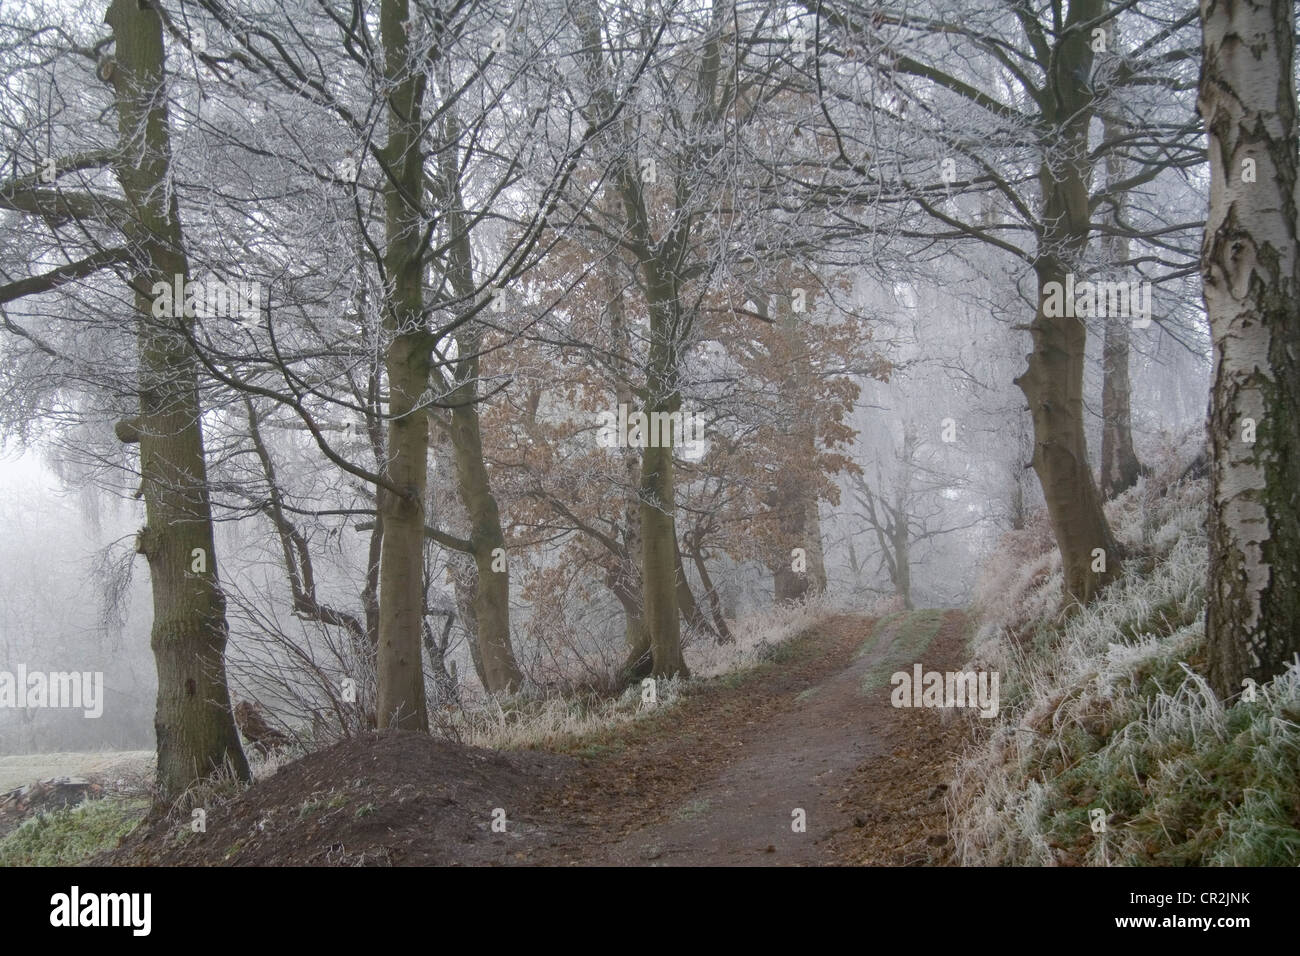 Winter Scene in Cheshire Forest Path - Stock Image